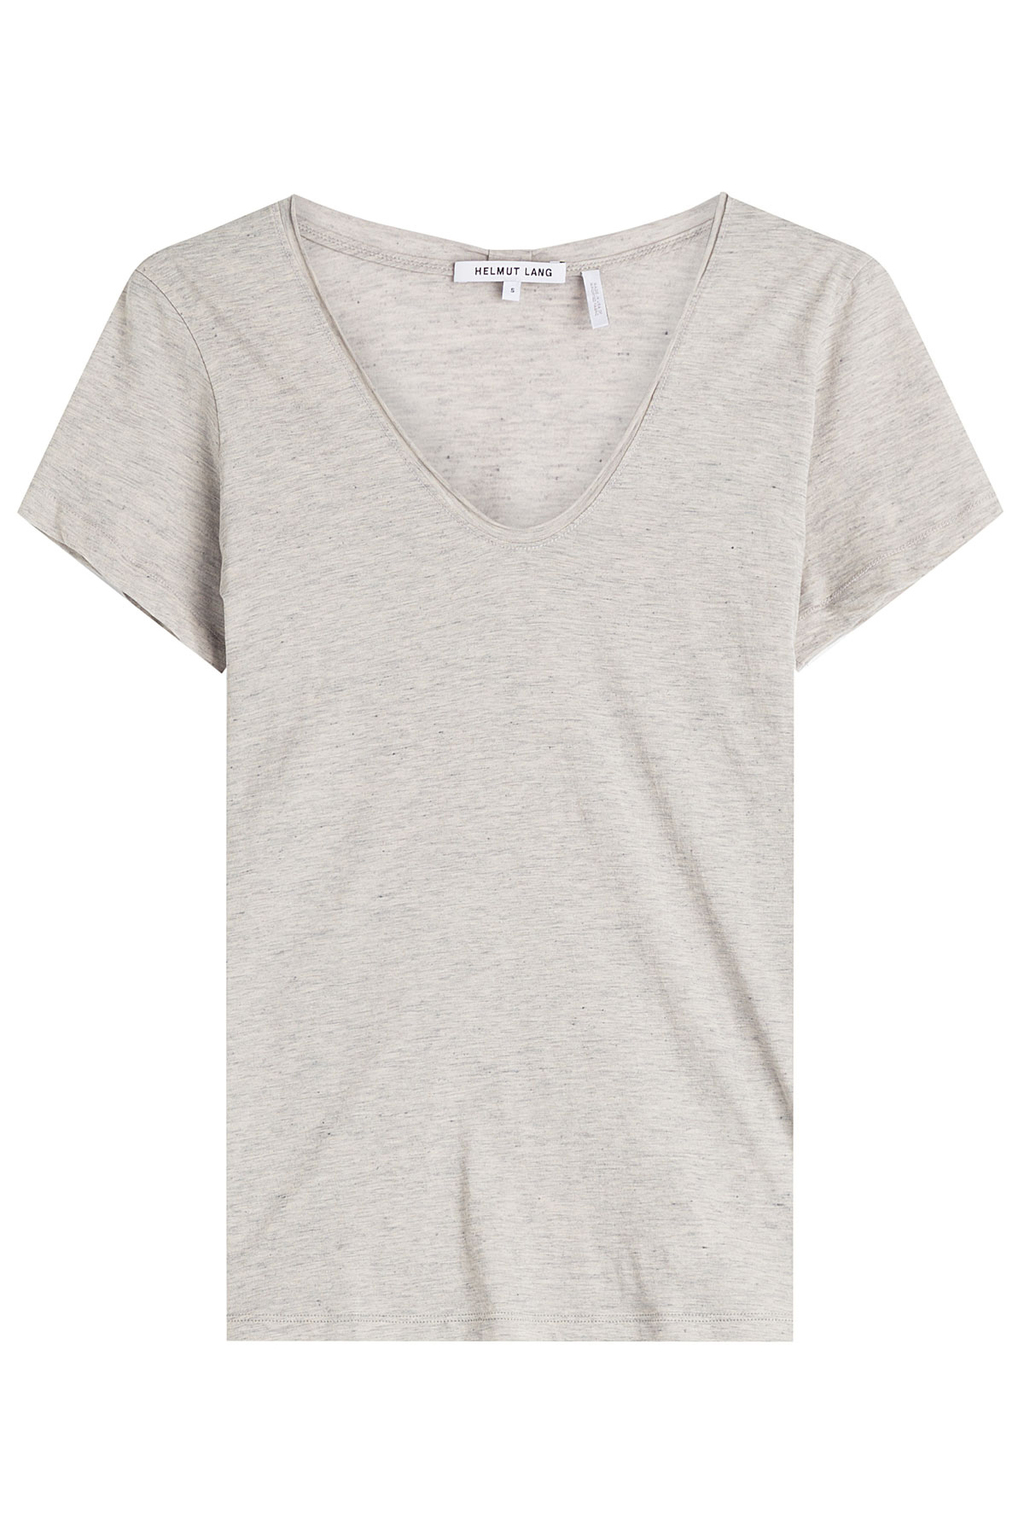 Cotton T Shirt With Cashmere - neckline: v-neck; pattern: plain; style: t-shirt; predominant colour: light grey; occasions: casual; length: standard; fibres: cotton - 100%; fit: body skimming; sleeve length: short sleeve; sleeve style: standard; pattern type: fabric; texture group: jersey - stretchy/drapey; season: s/s 2016; wardrobe: basic